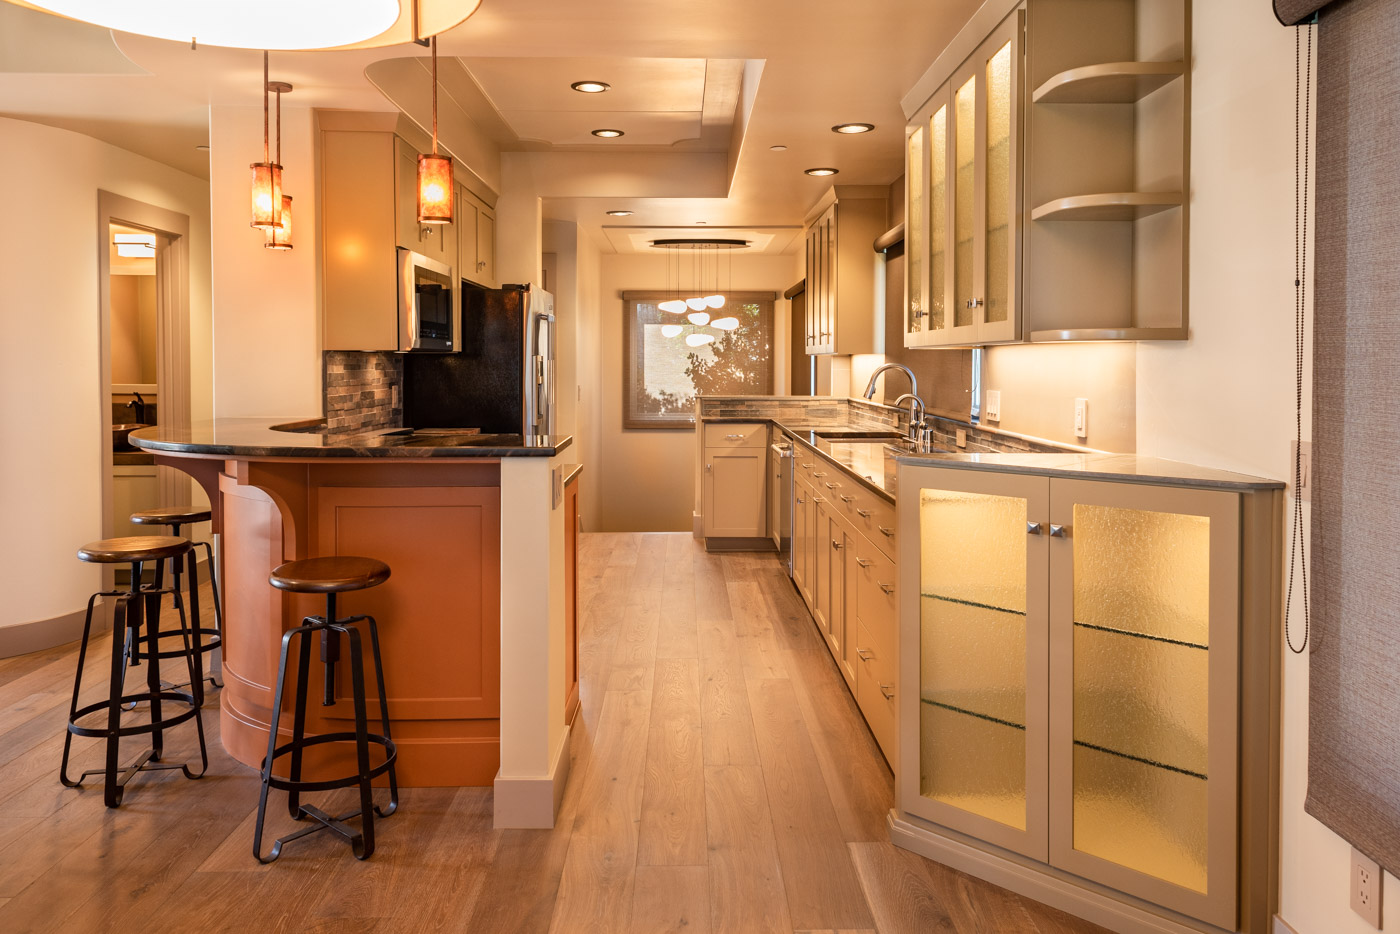 A Galley kitchen layout with custom orange and beige painted cabinets and bar seating